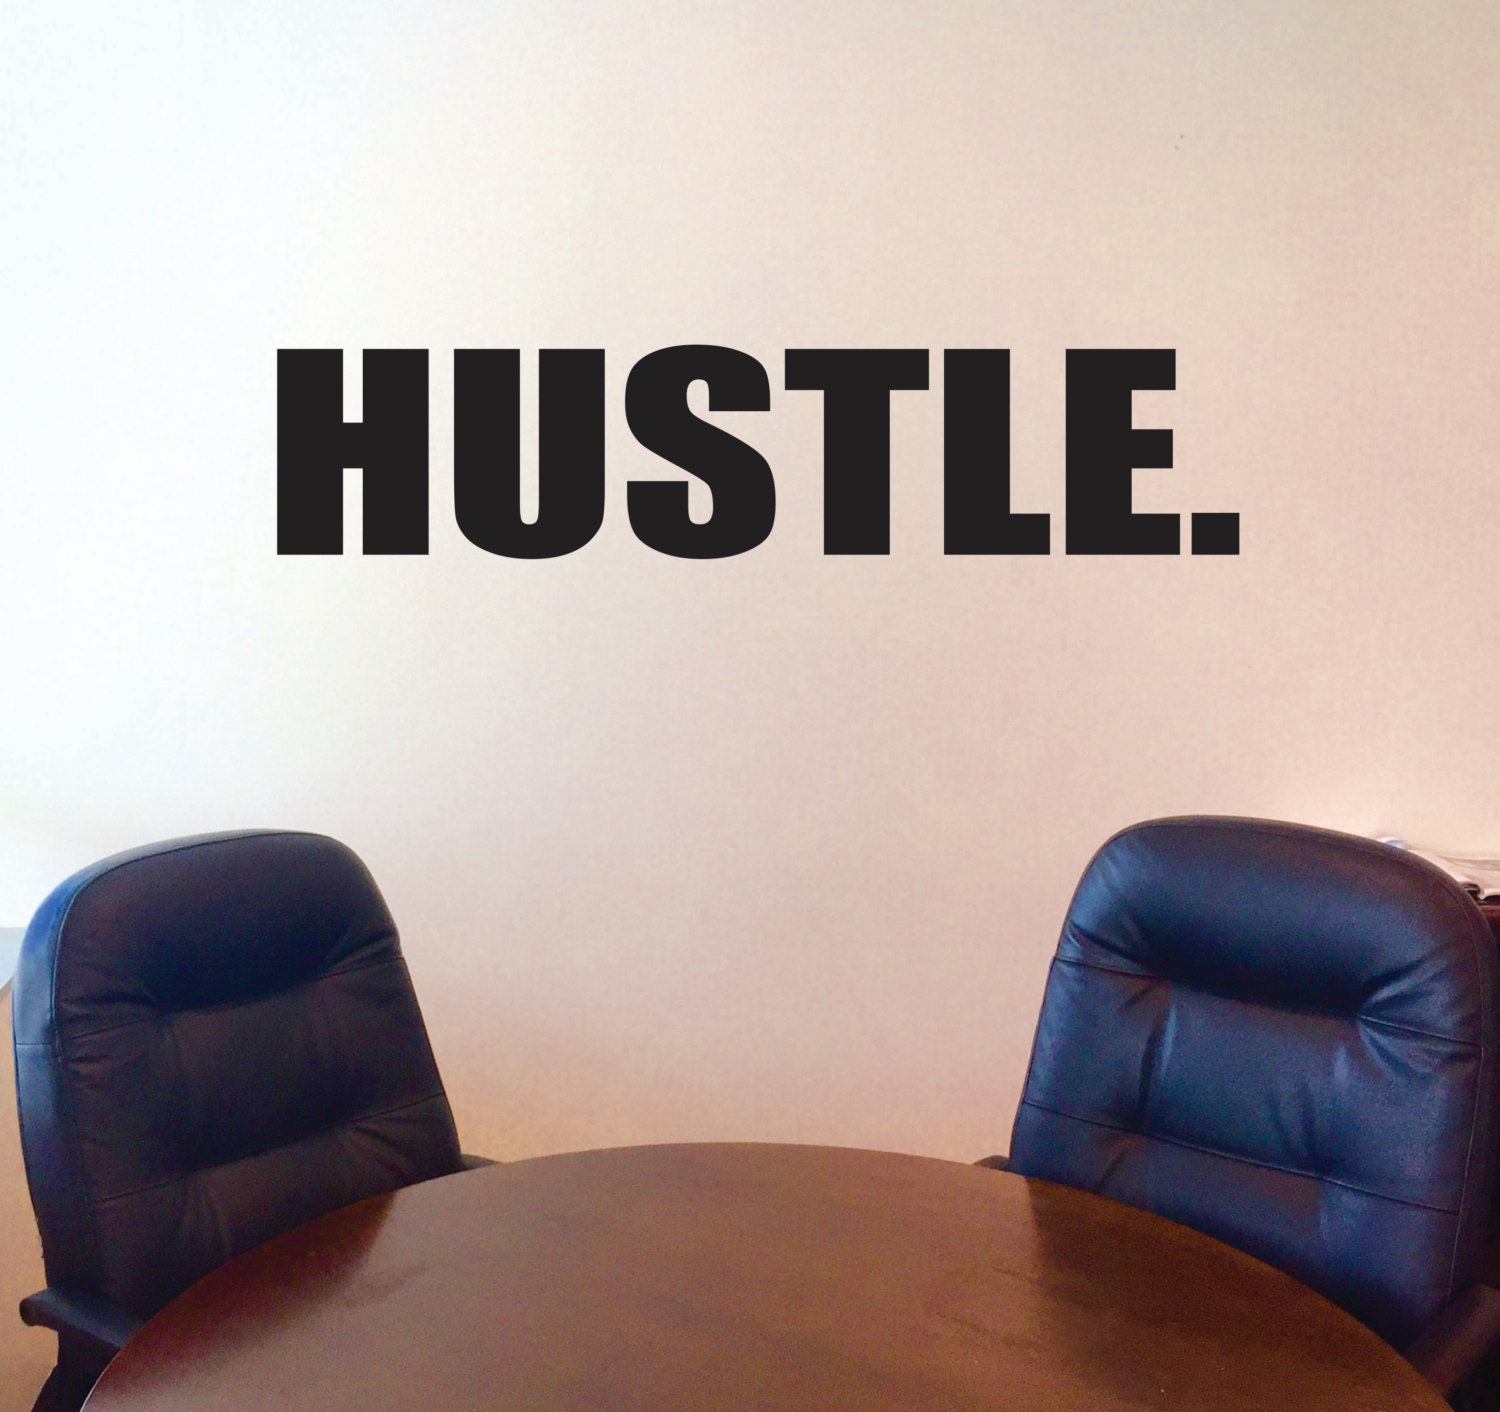 Hustle Wall Decal, Motivational Wall Decal, Inspirational Wall Decal, Office  Wall Decor